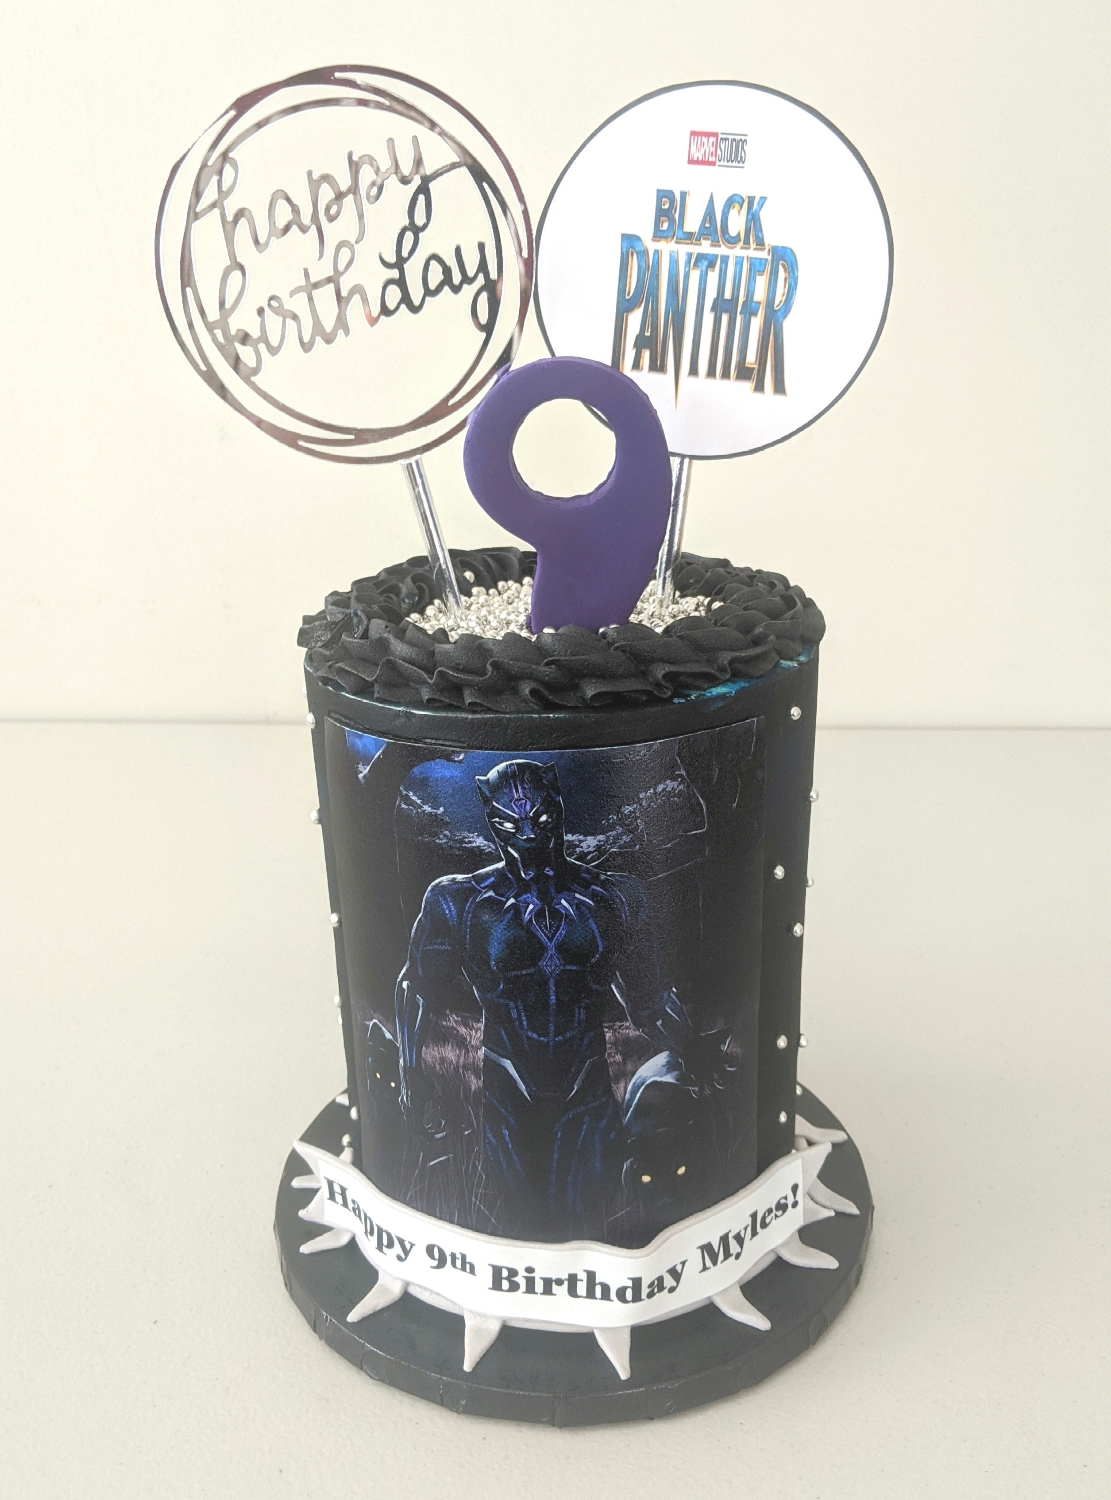 Black Panther Barrel Cake